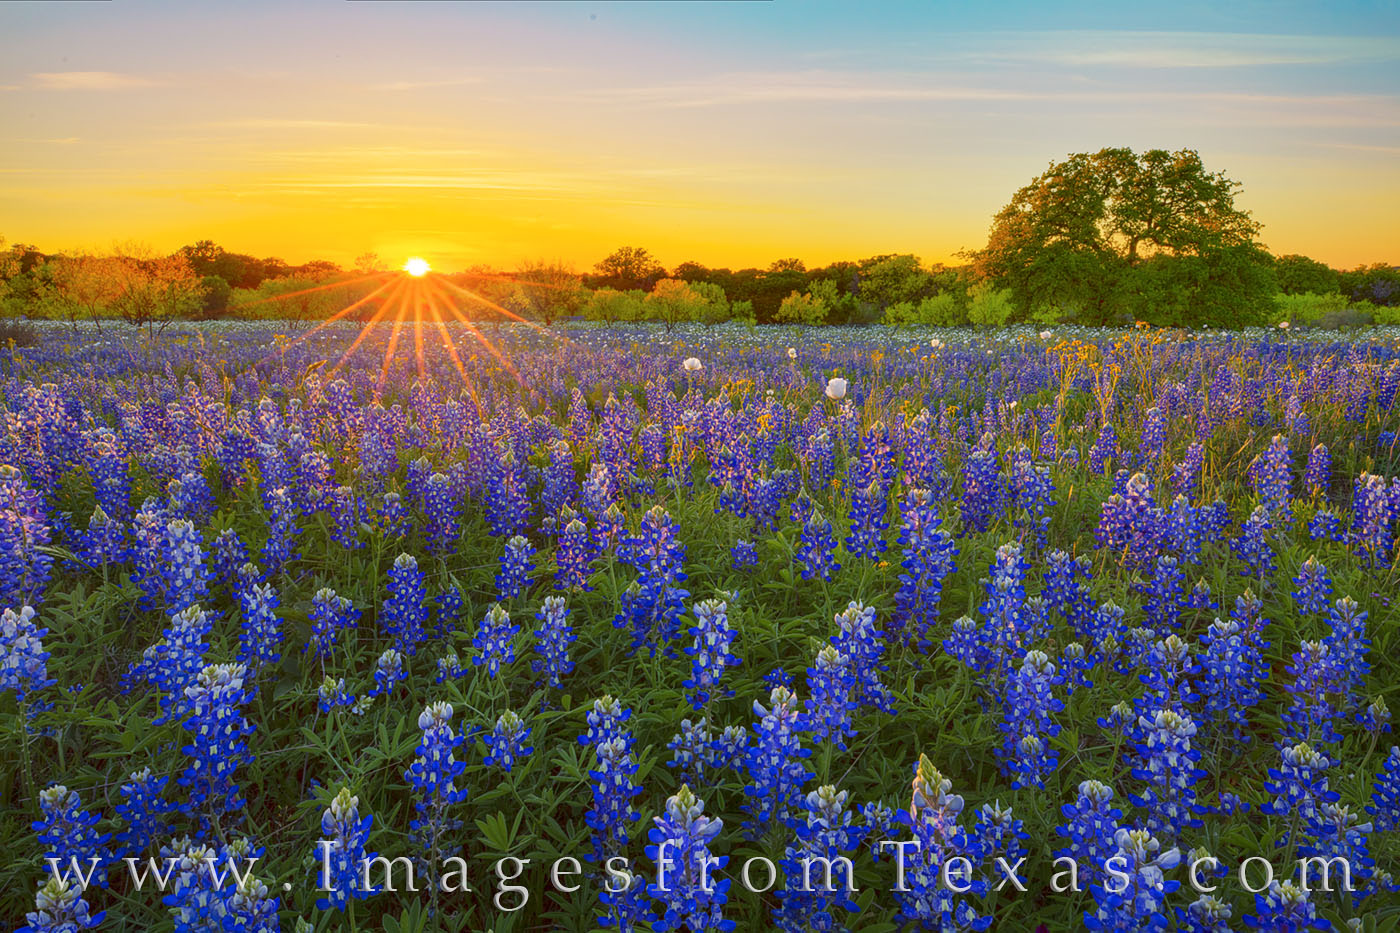 bluebonnets, sunset, hill country, oak tree, wildflowers, poppies, white poppies, rural, quiet, solitude, photo